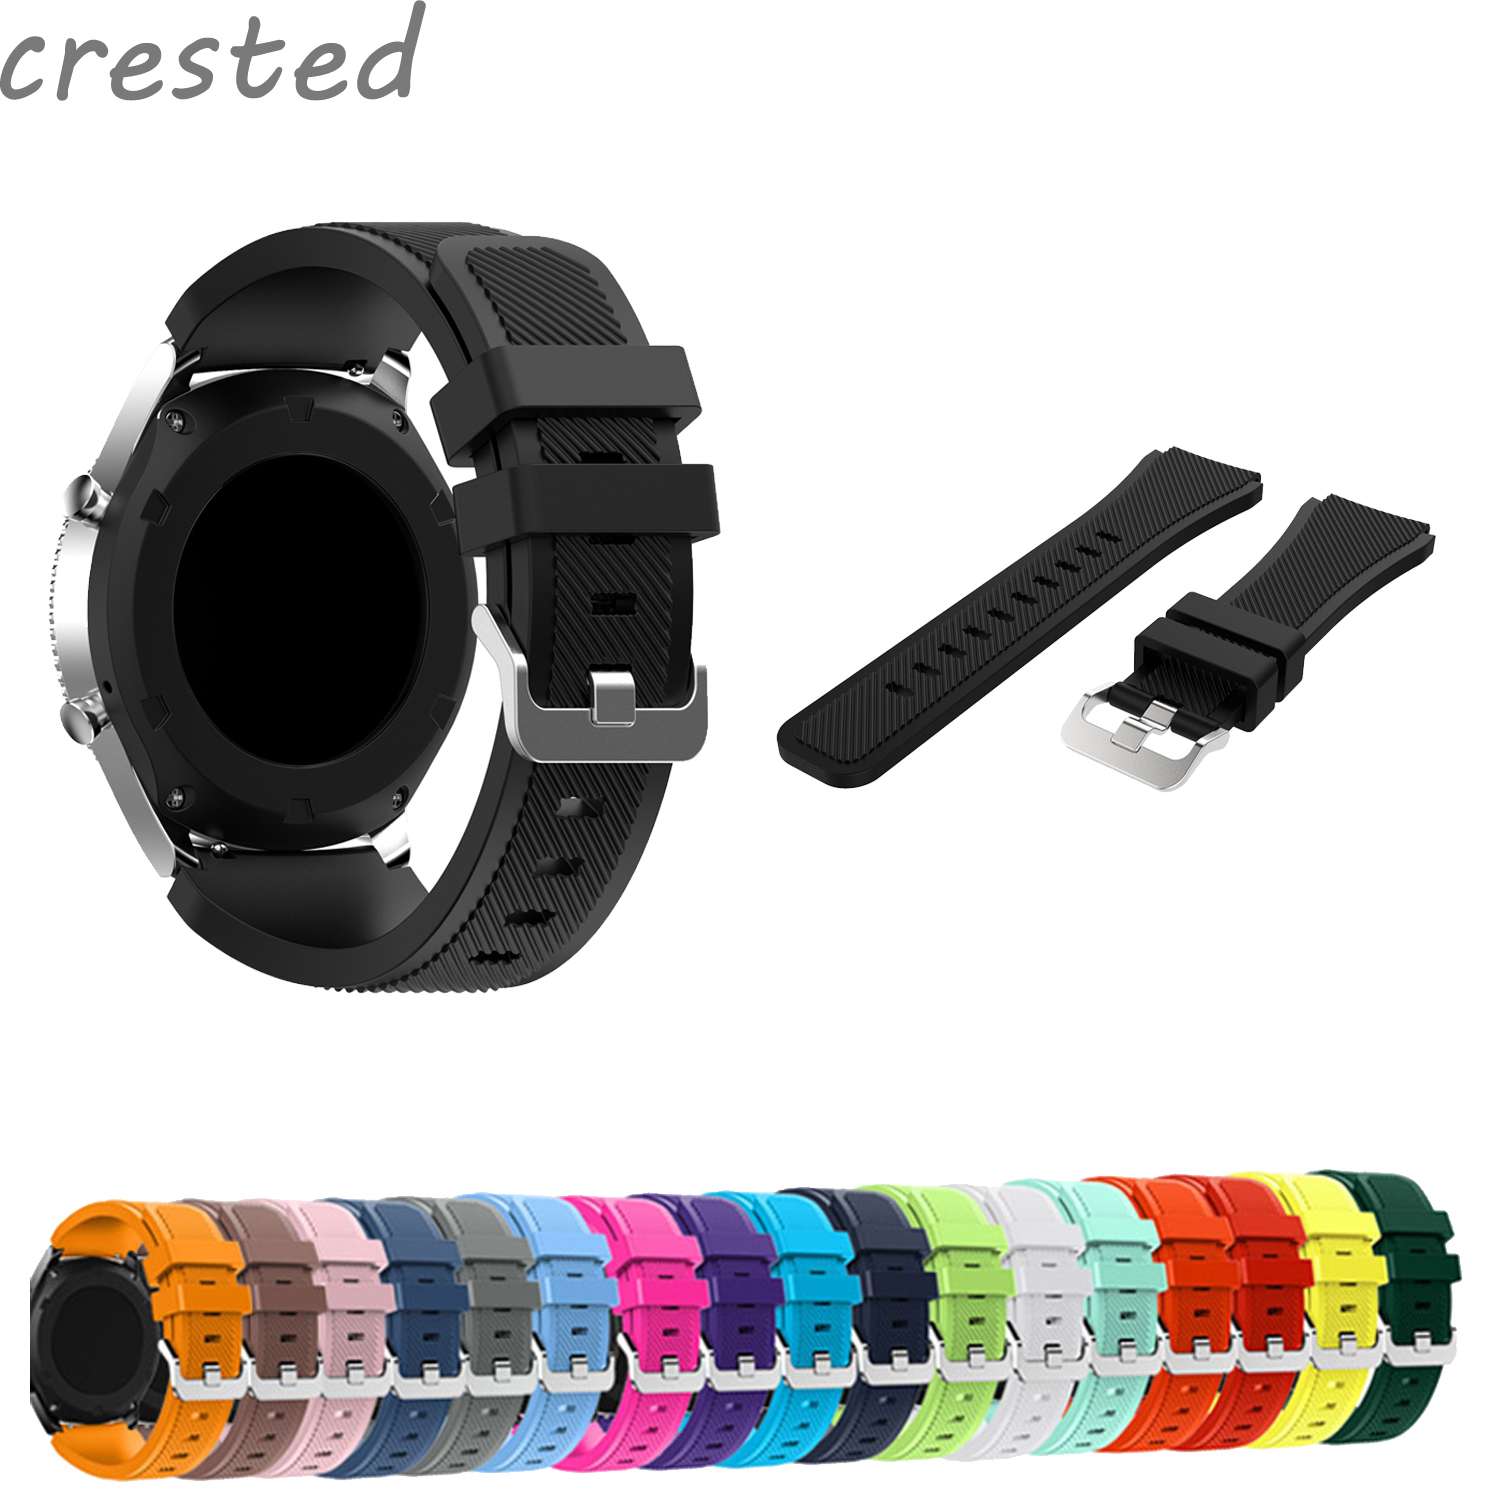 CRESTED 22mm silicone strap band for Samsung Gear S3 Classic/ Frontier rubber smart watch wristband replacement band 18 colors rubber wrist strap for samsung gear s3 frontier silicone watch band for samsung gear s3 classic bracelet band 22mm